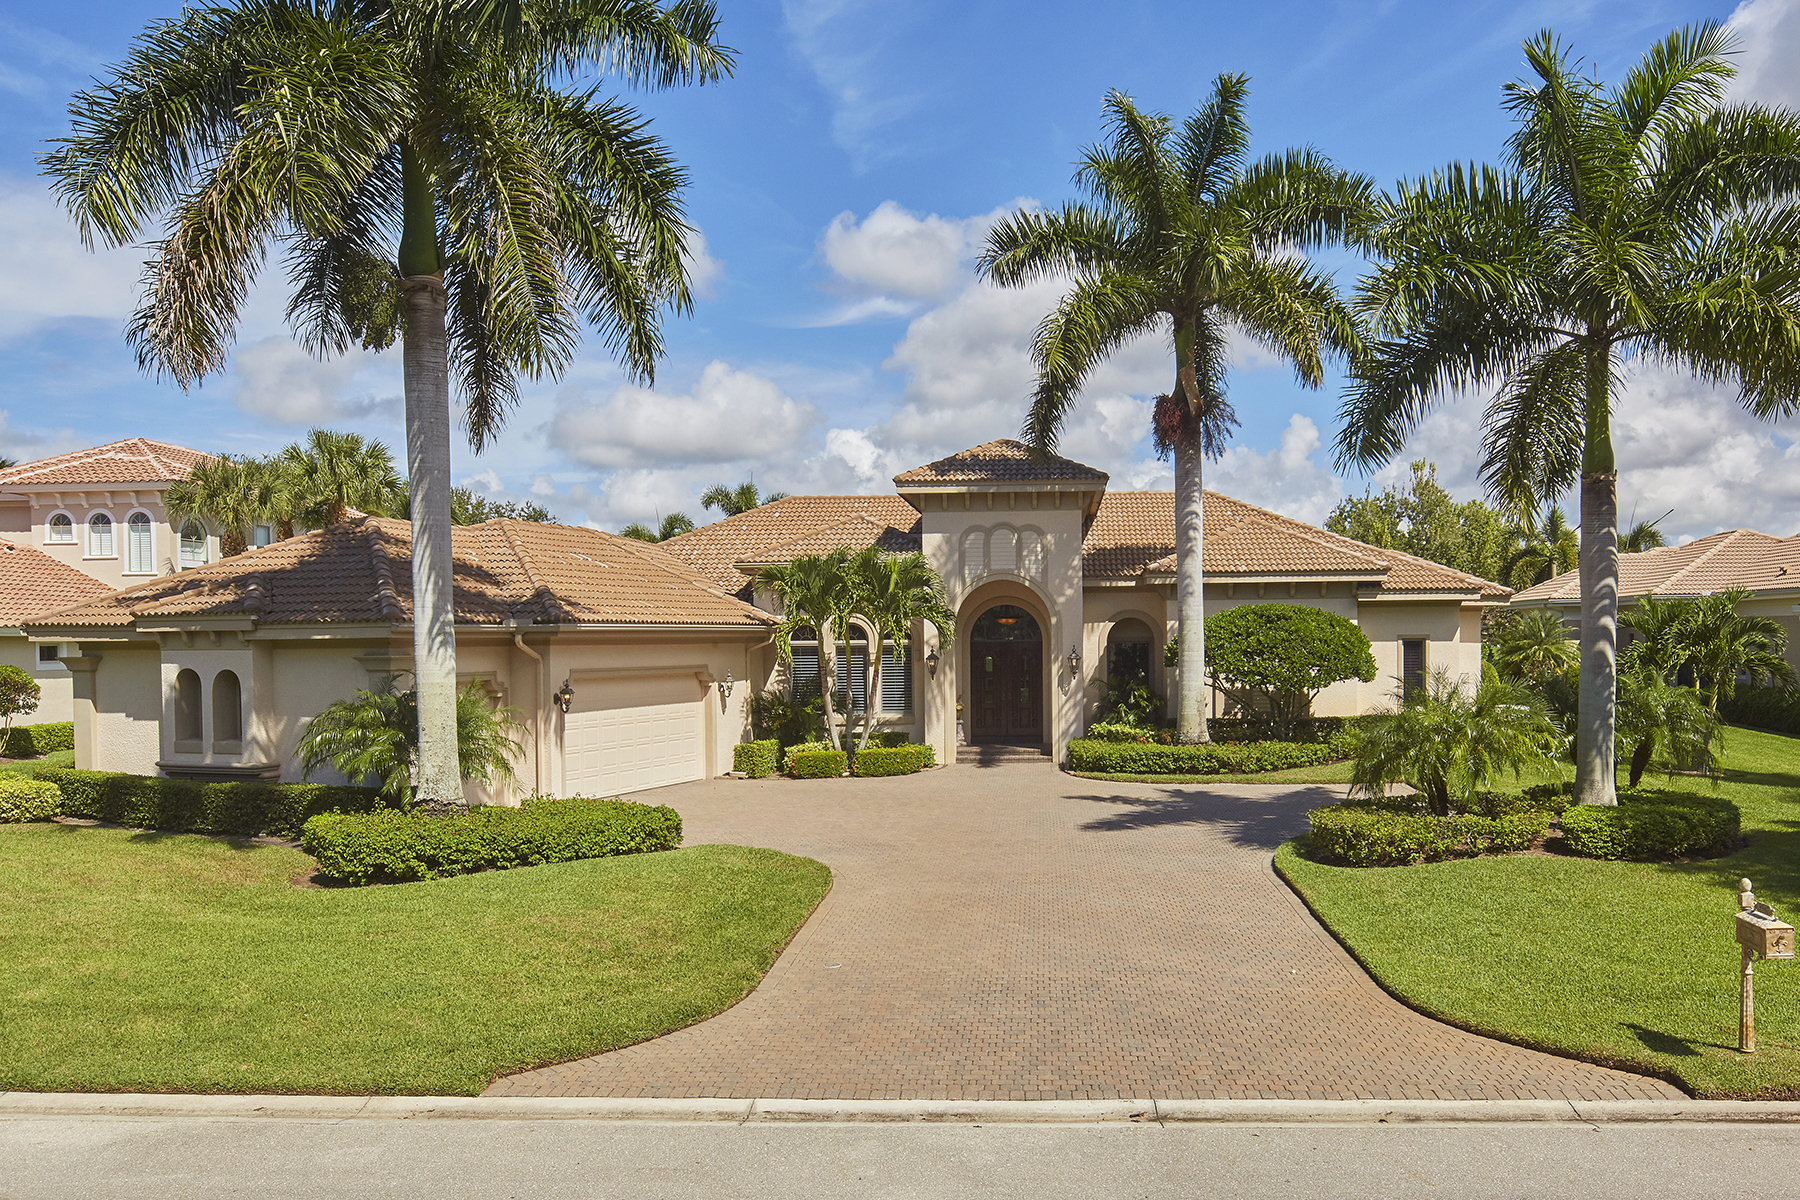 Single Family Homes for Sale at SHADOW WOOD - LAKE FOREST 9580 Lakebend Preserve Court, Estero, Florida 34135 United States